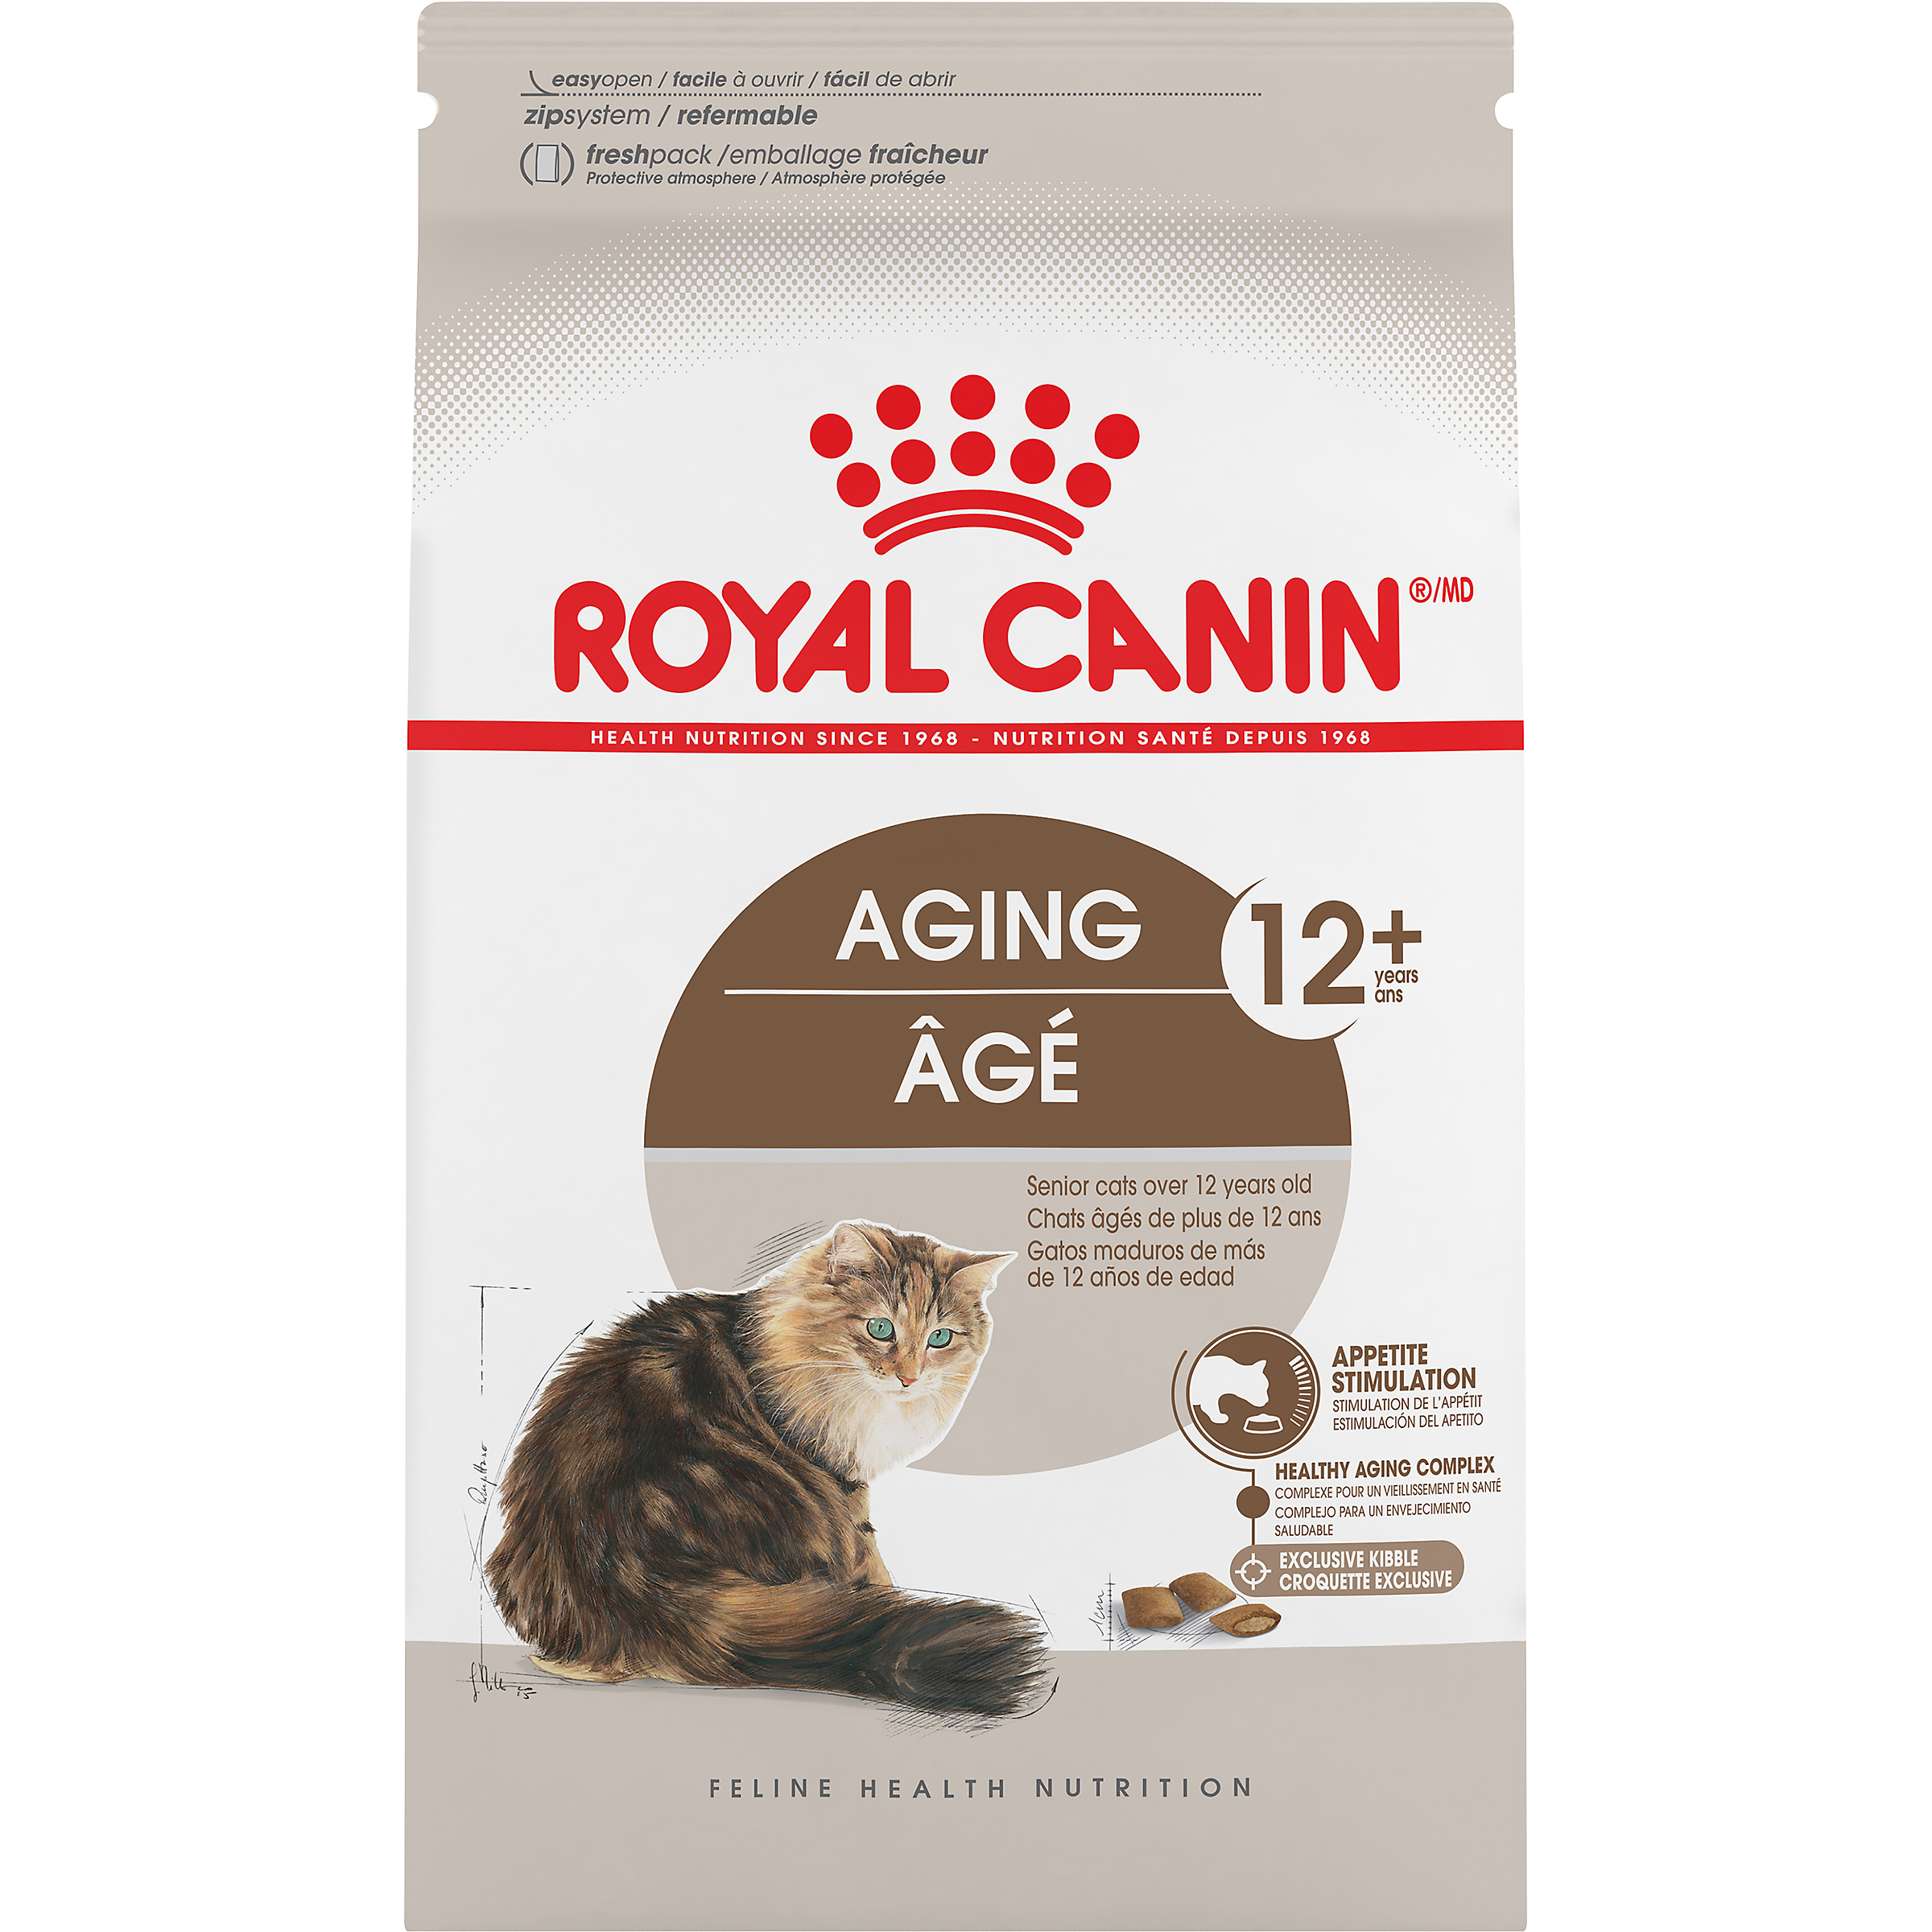 Aging 12+ Dry Adult Cat Food